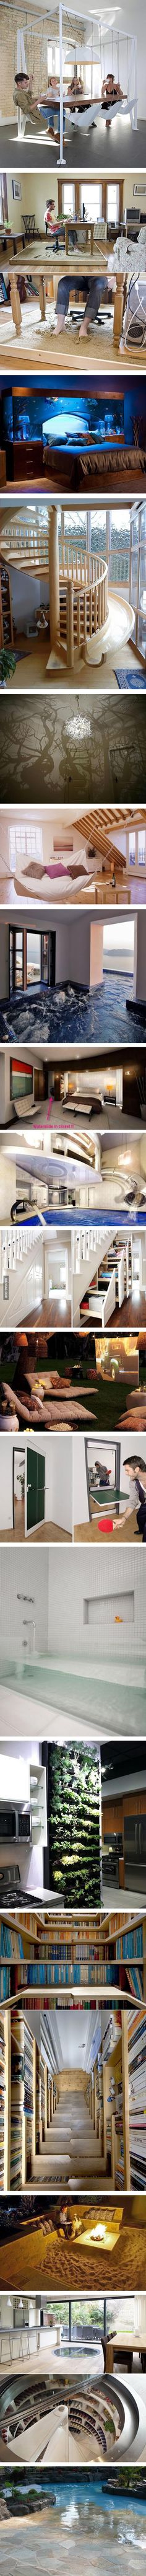 Awesome House Ideas! the out door pool, the stairwell, and the celler in the floor